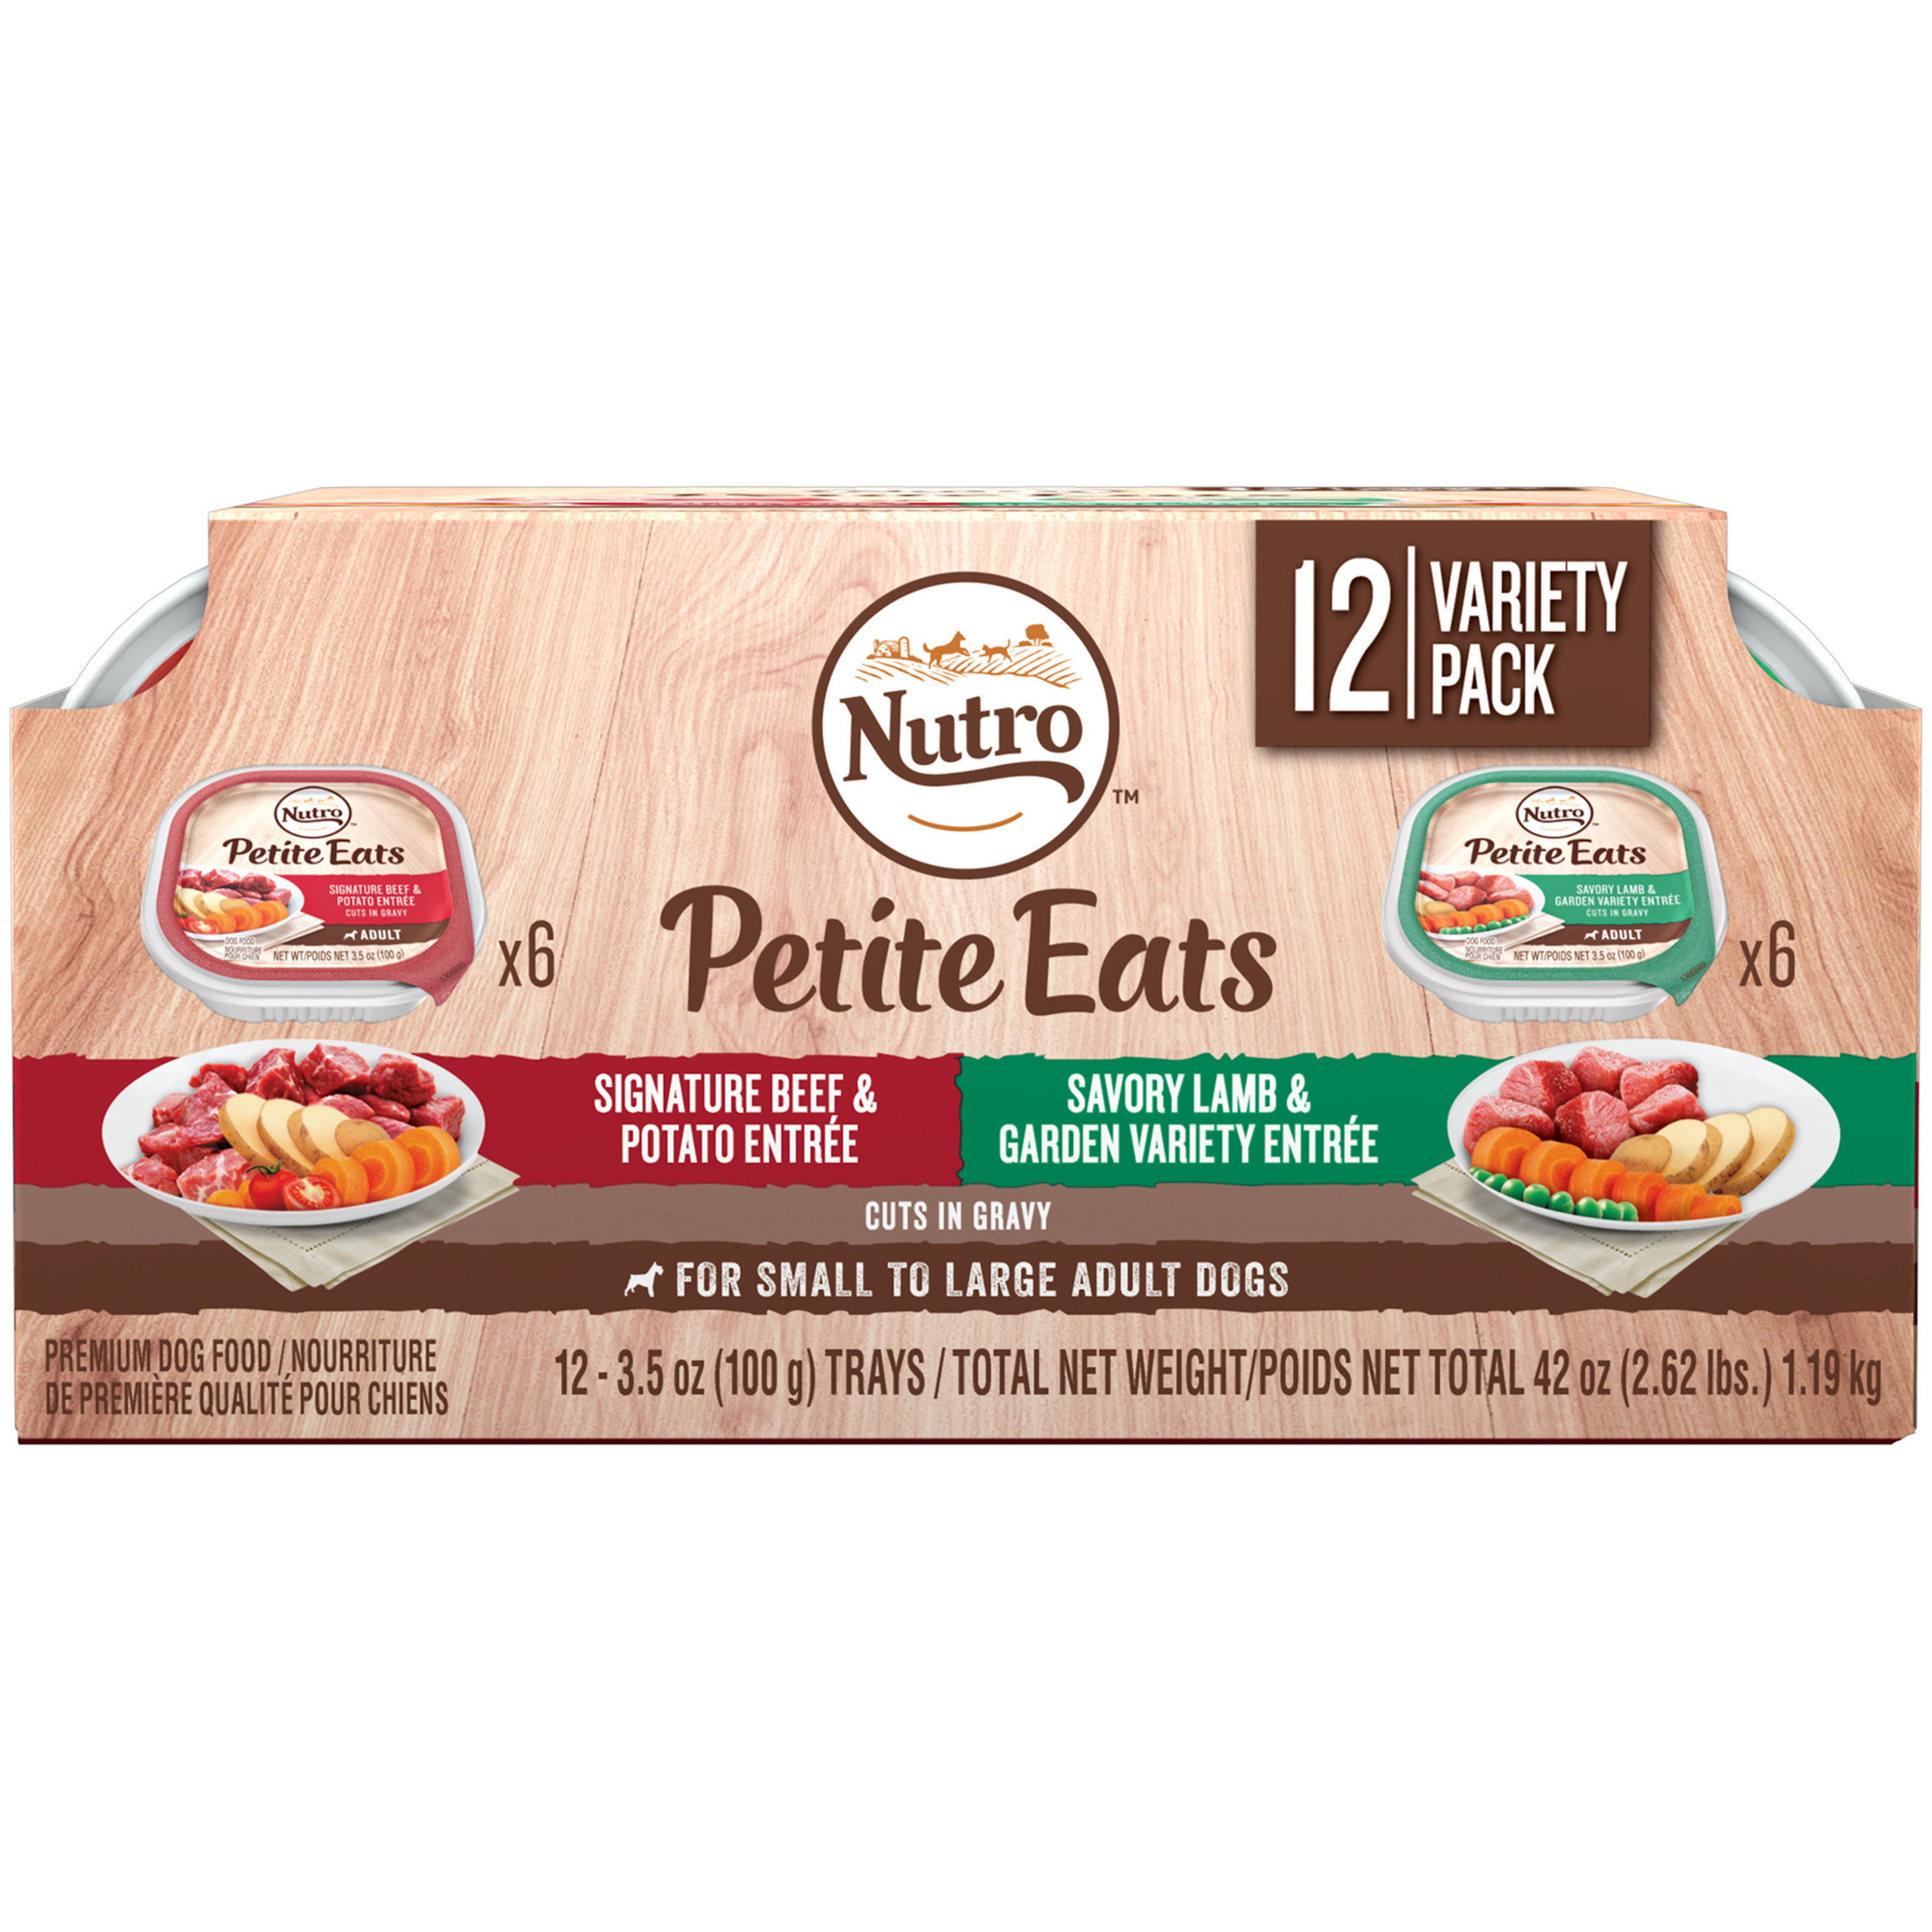 Nutro Petite Eats Adult Wet Dog Food Variety Pack, Signature Beef & Potato, & Savory Lamb & Garden Variety Cuts in Gravy, 3.5 Oz (24 Trays)